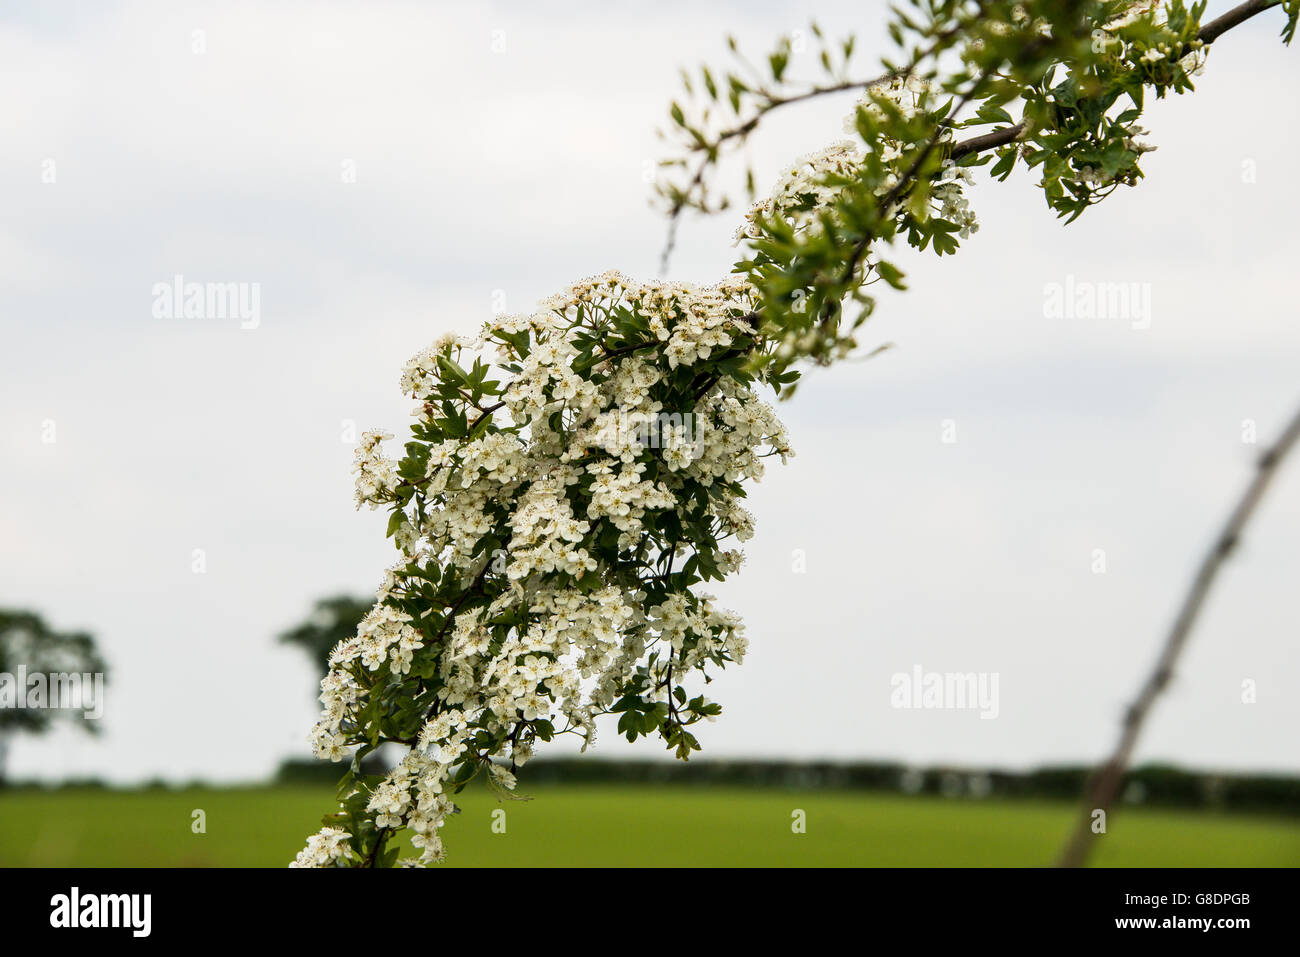 The branch of a hawthorn tree in blossom - Stock Image